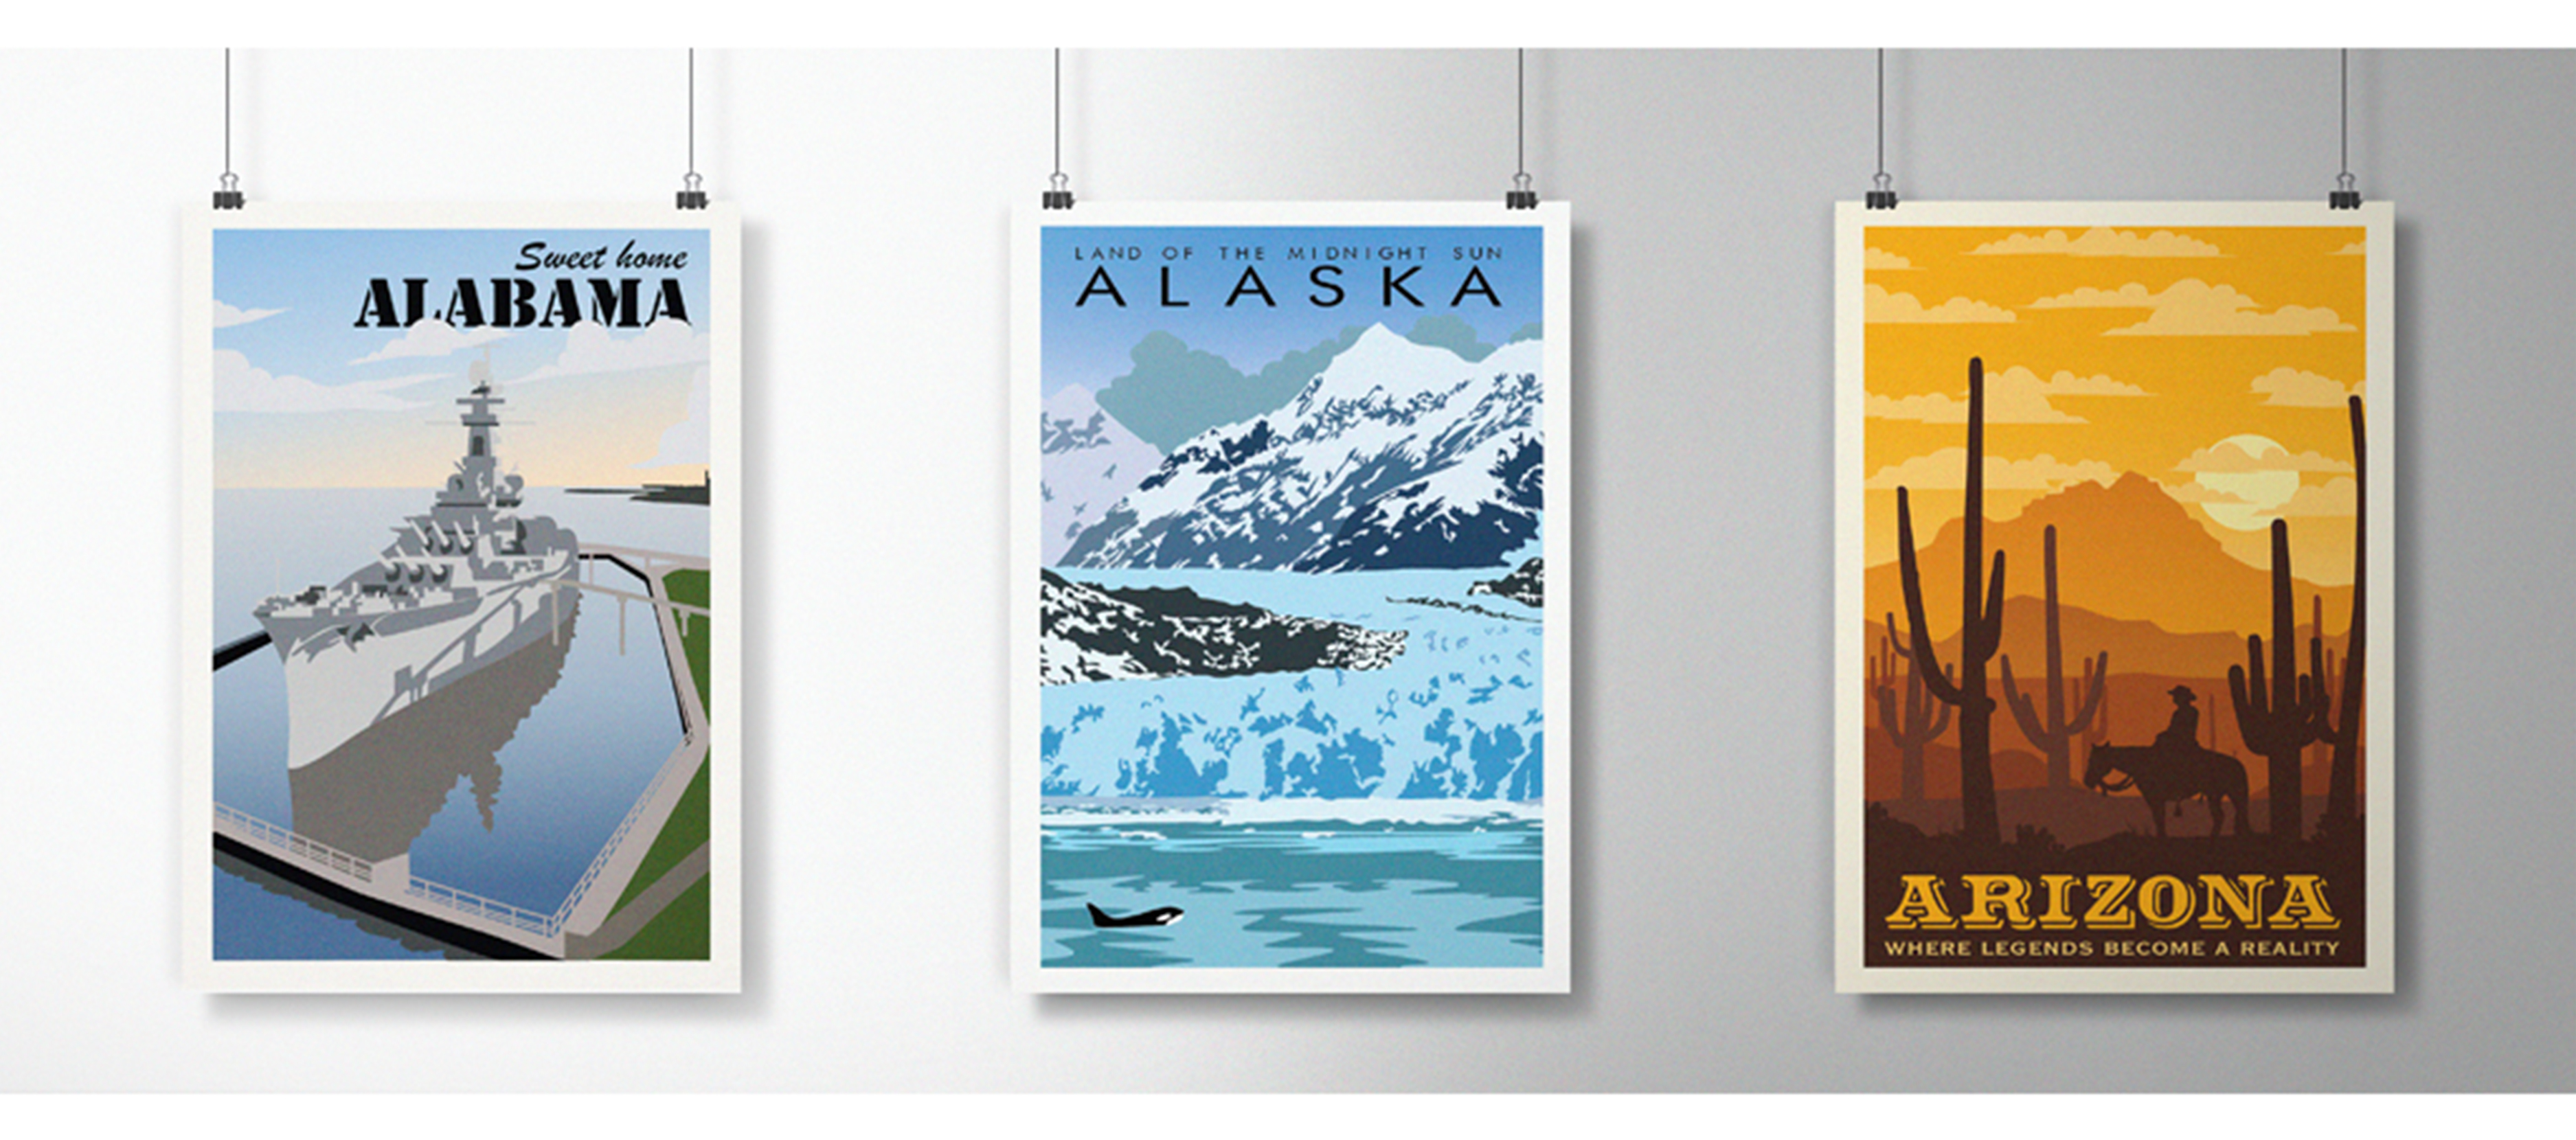 America The Beautiful - Alabama, Alaska, and Arizona